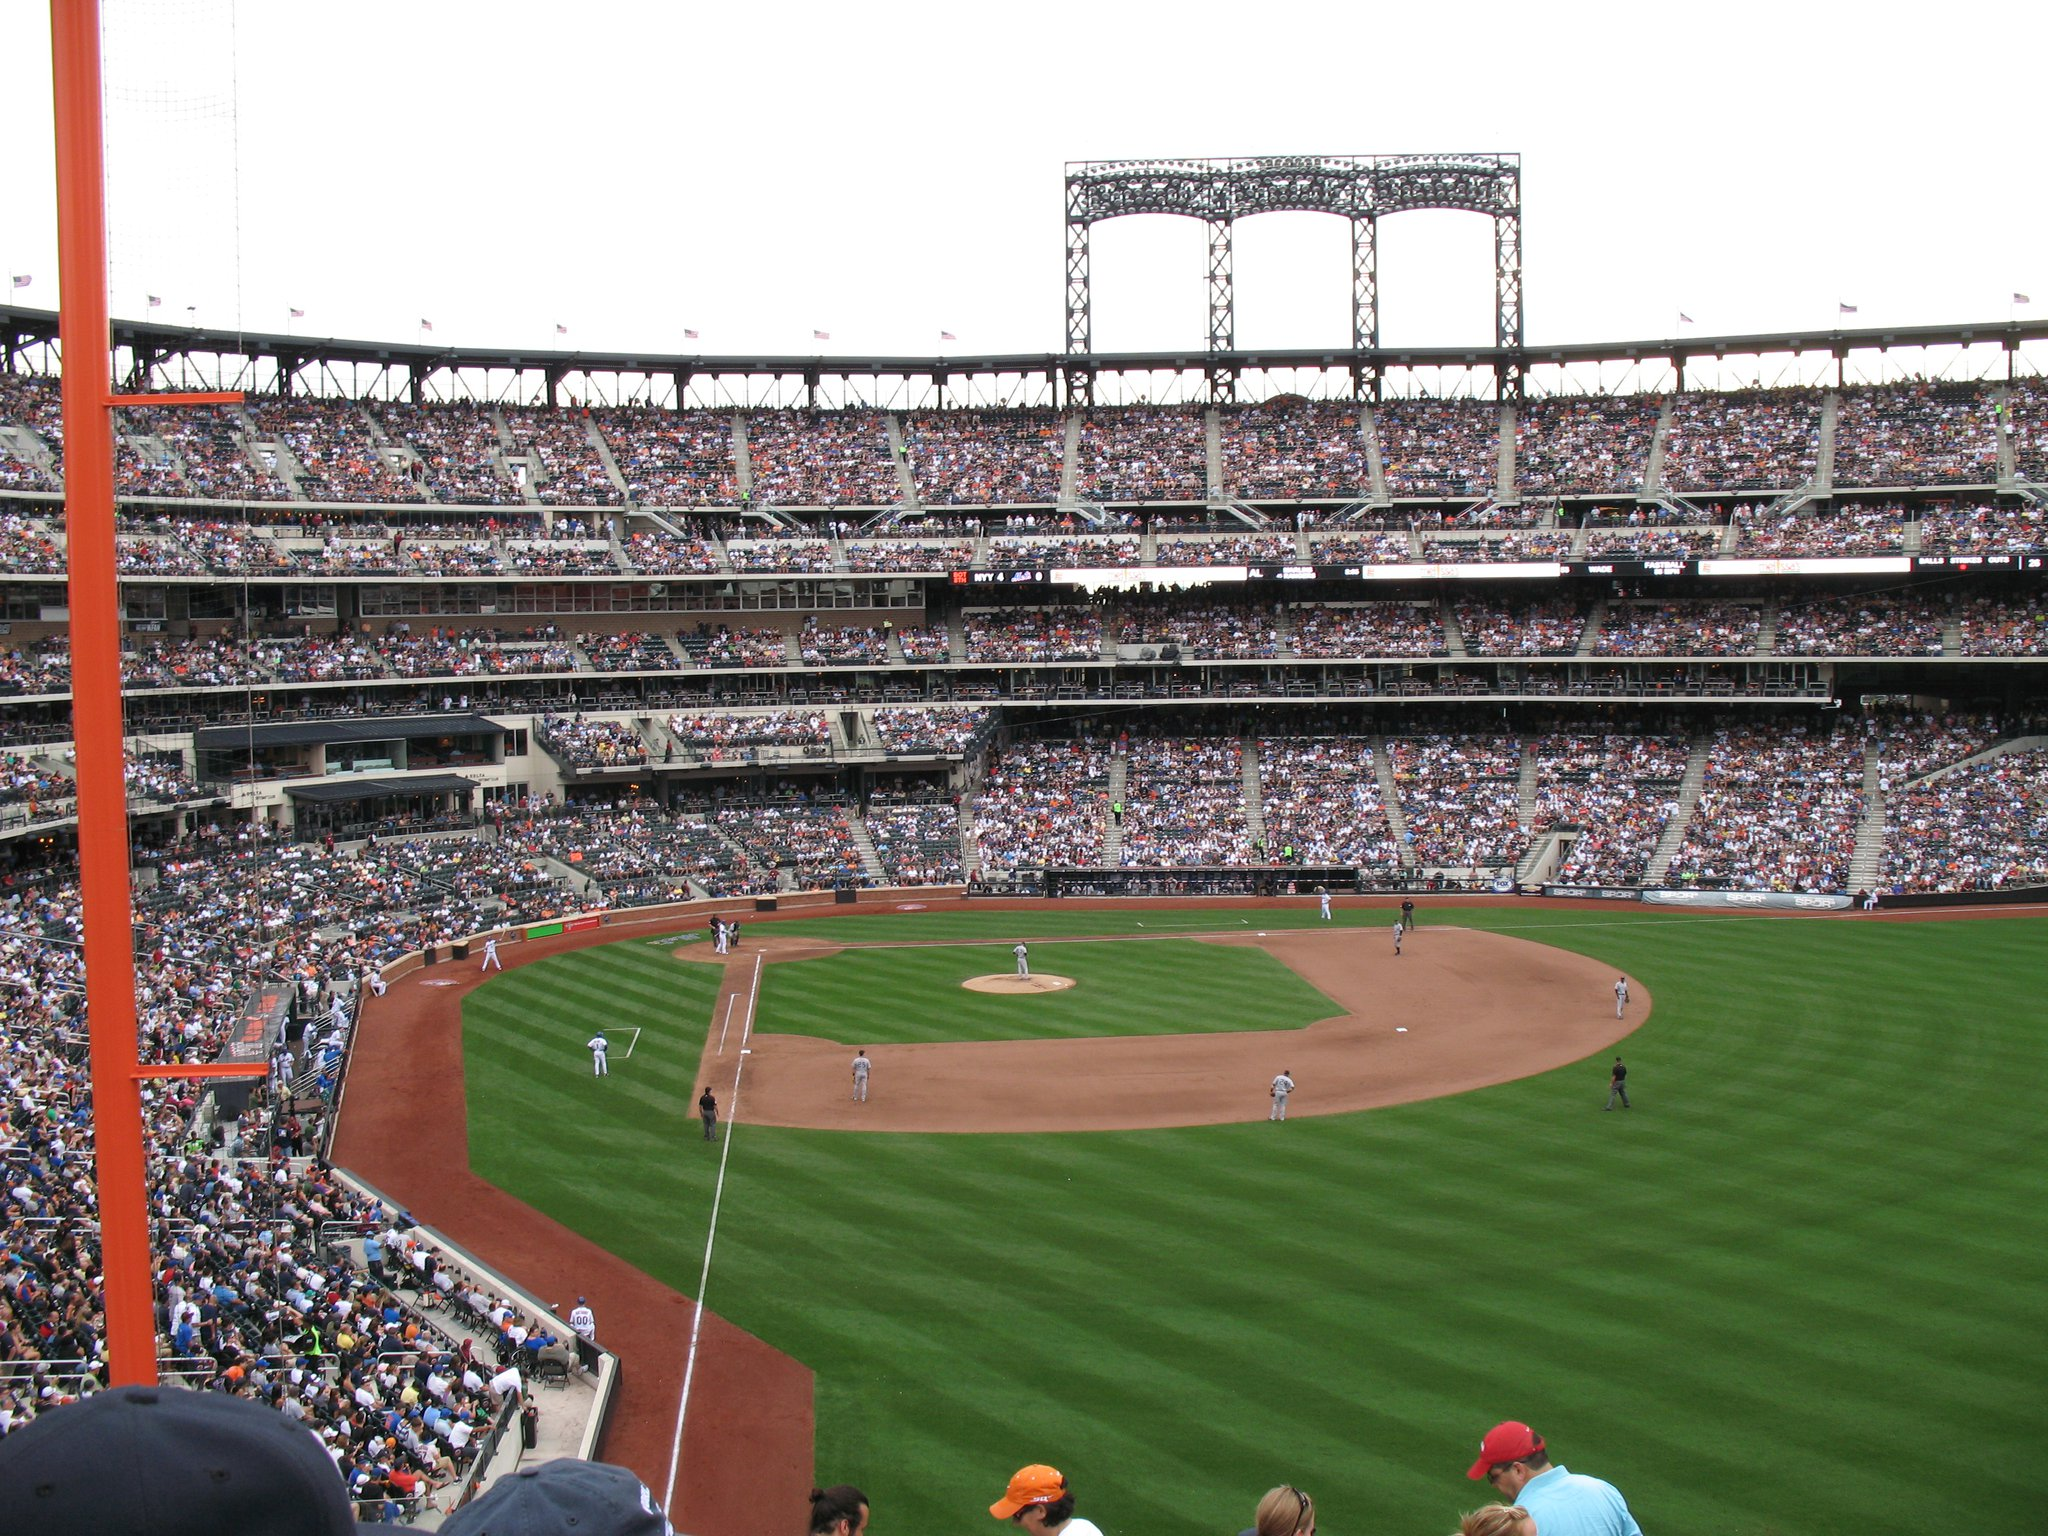 My first baseball game, where I saw my New York Yankees defeat crosstown rivals the New York Mets 5-2 at the Mets' stadium, Citi Field.